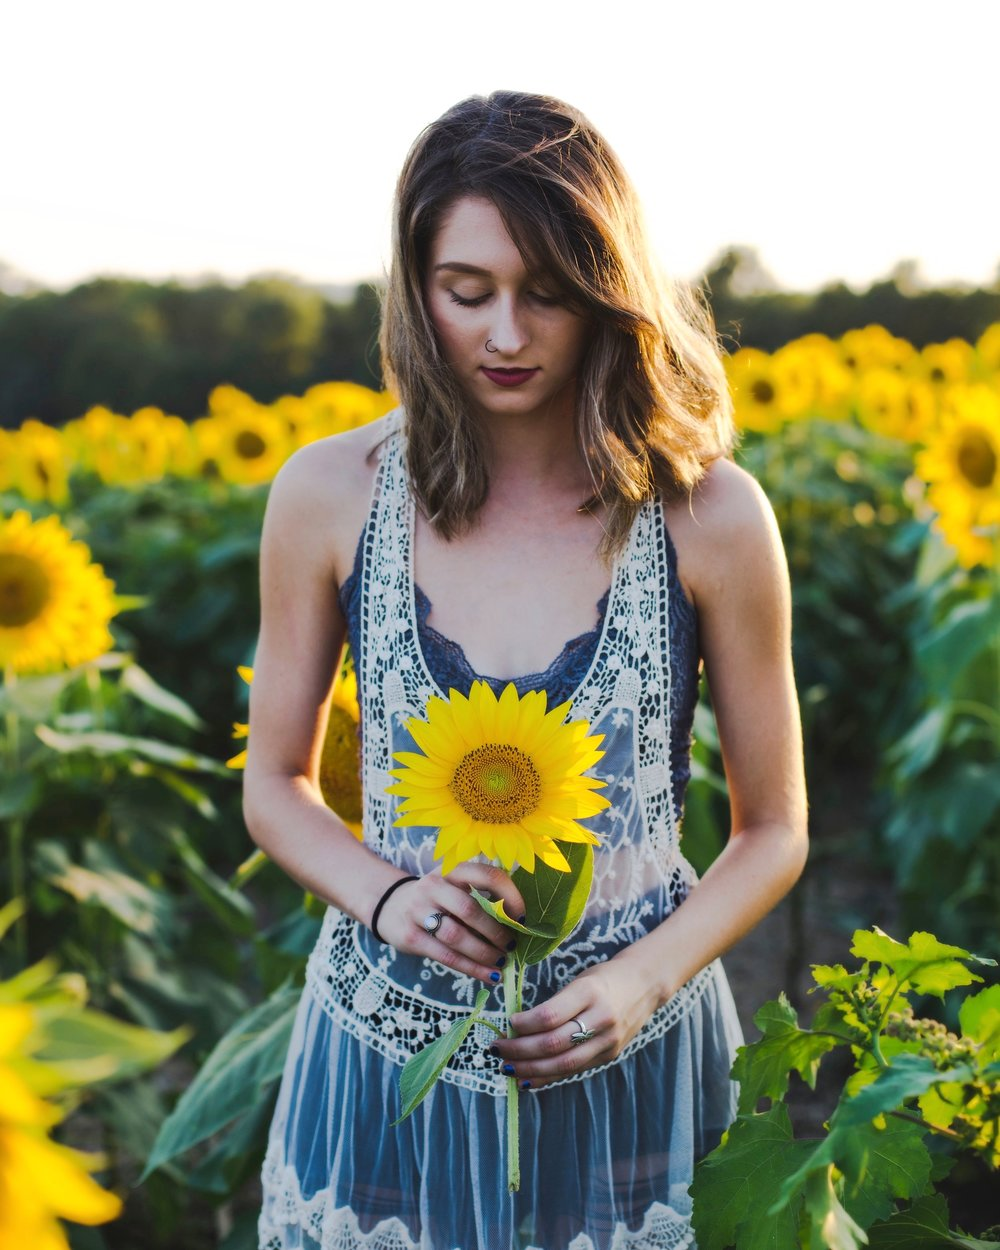 Sunflower_girl.jpg